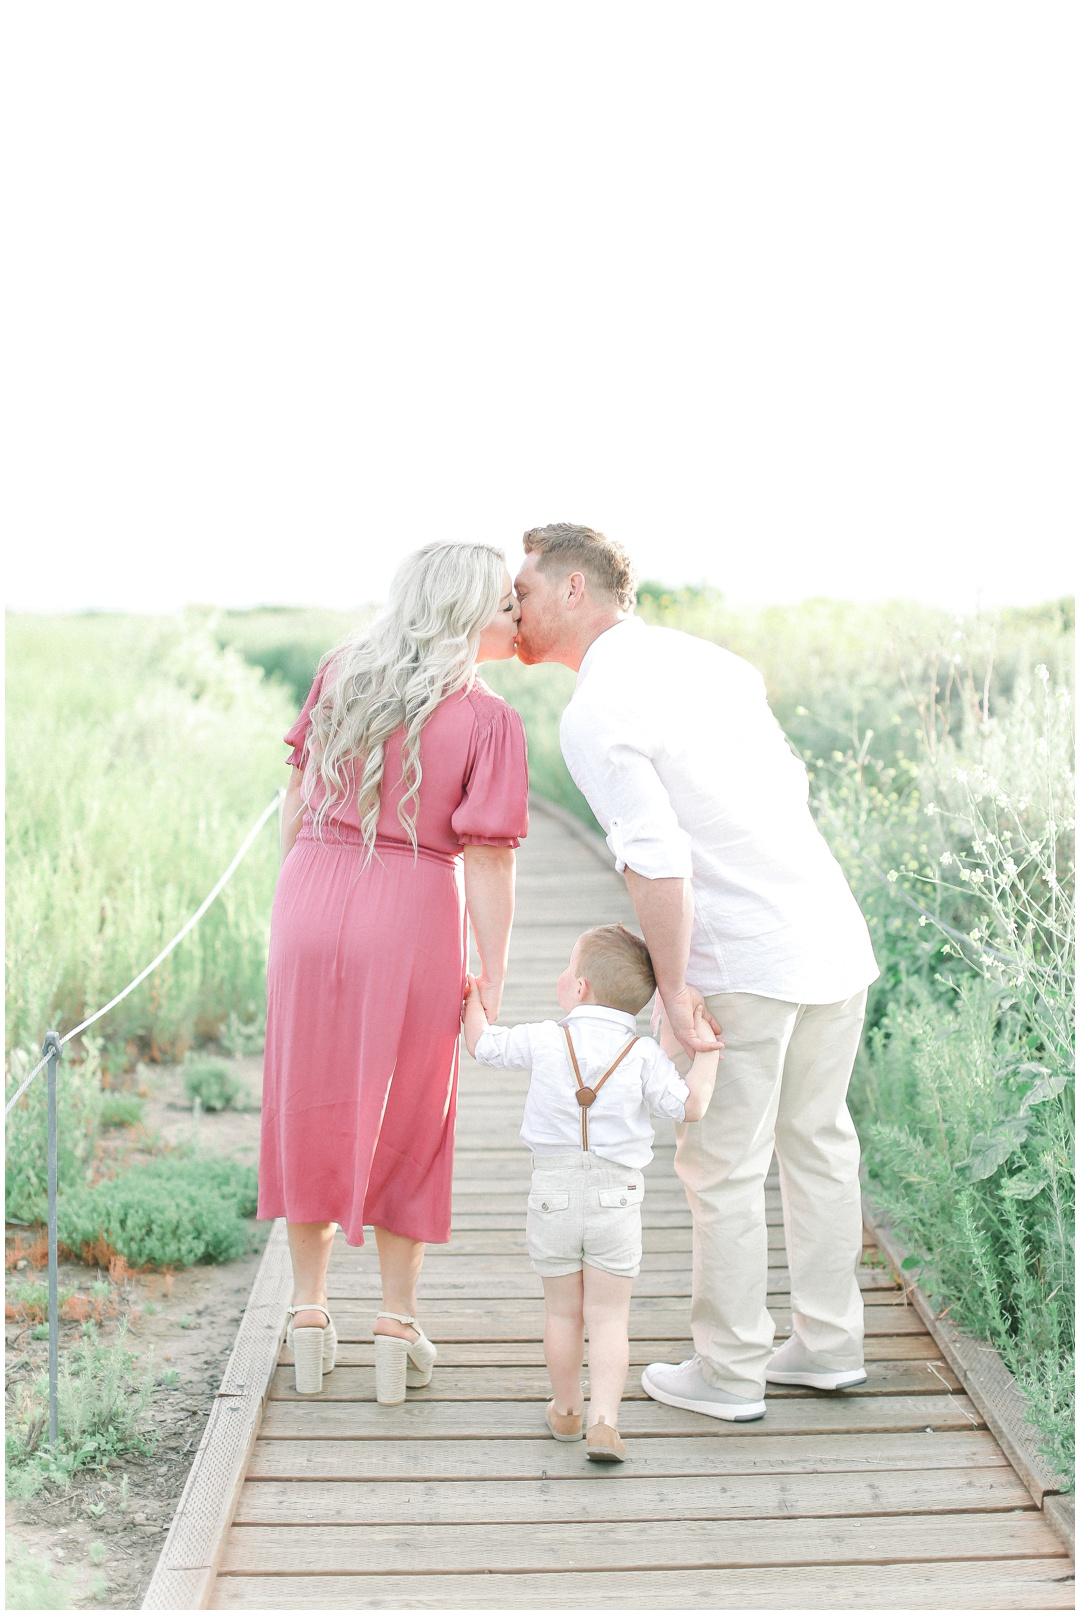 Newport_Beach_Newborn_Light_Airy_Natural_Photographer_Newport_Beach_Photographer_Orange_County_Family_Photographer_Cori_Kleckner_Photography_Newport_Beach_Photographer_Maternity_kole_calhoun56_kole_calhoun_Jennifer_Calhoun_Knox_Calhoun_3752.jpg